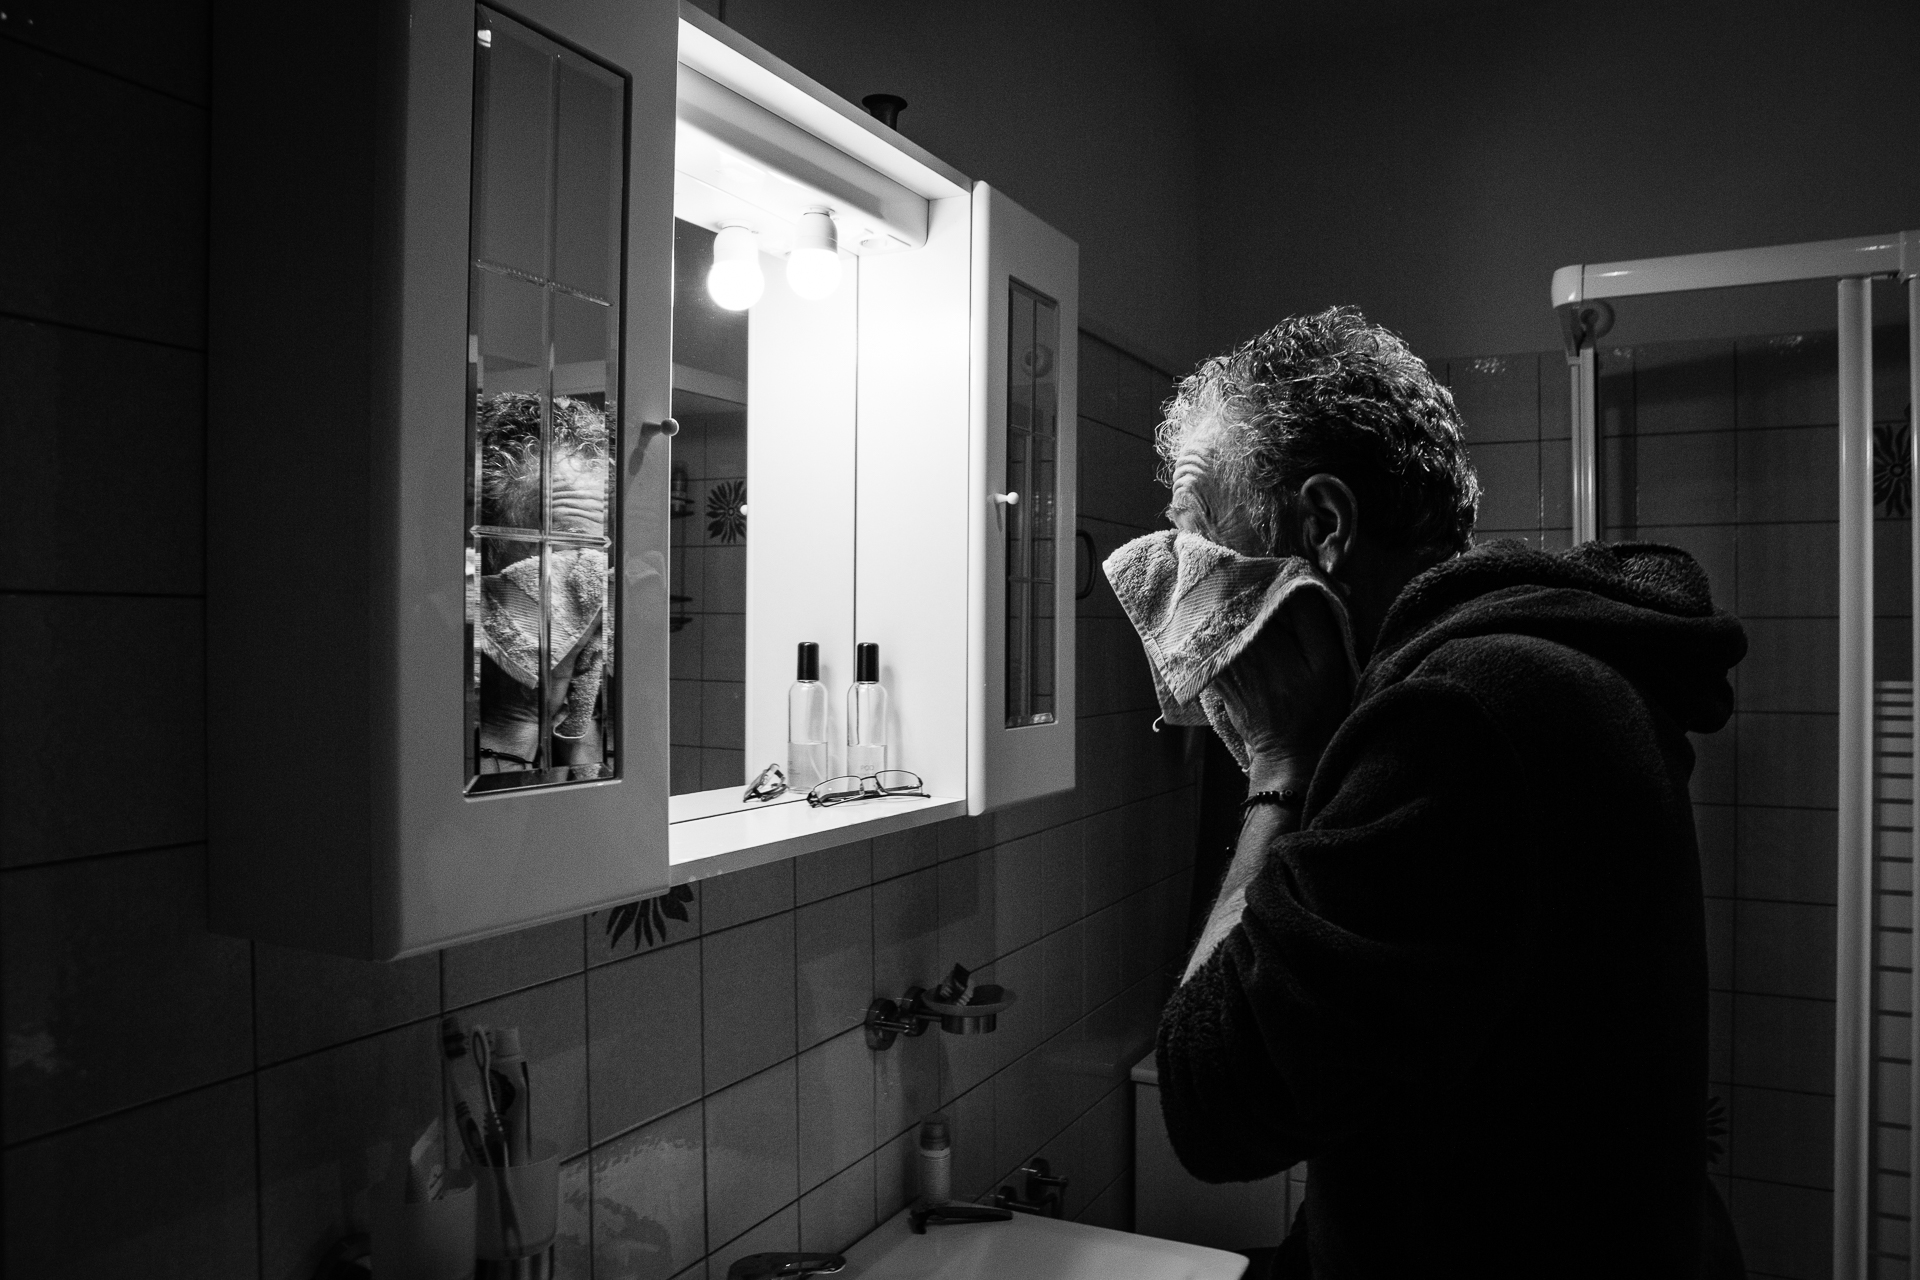 Lake of Varese, IT Elopement Image | The groom shaving in front of the bathroom mirror and pats his face dry with a towel